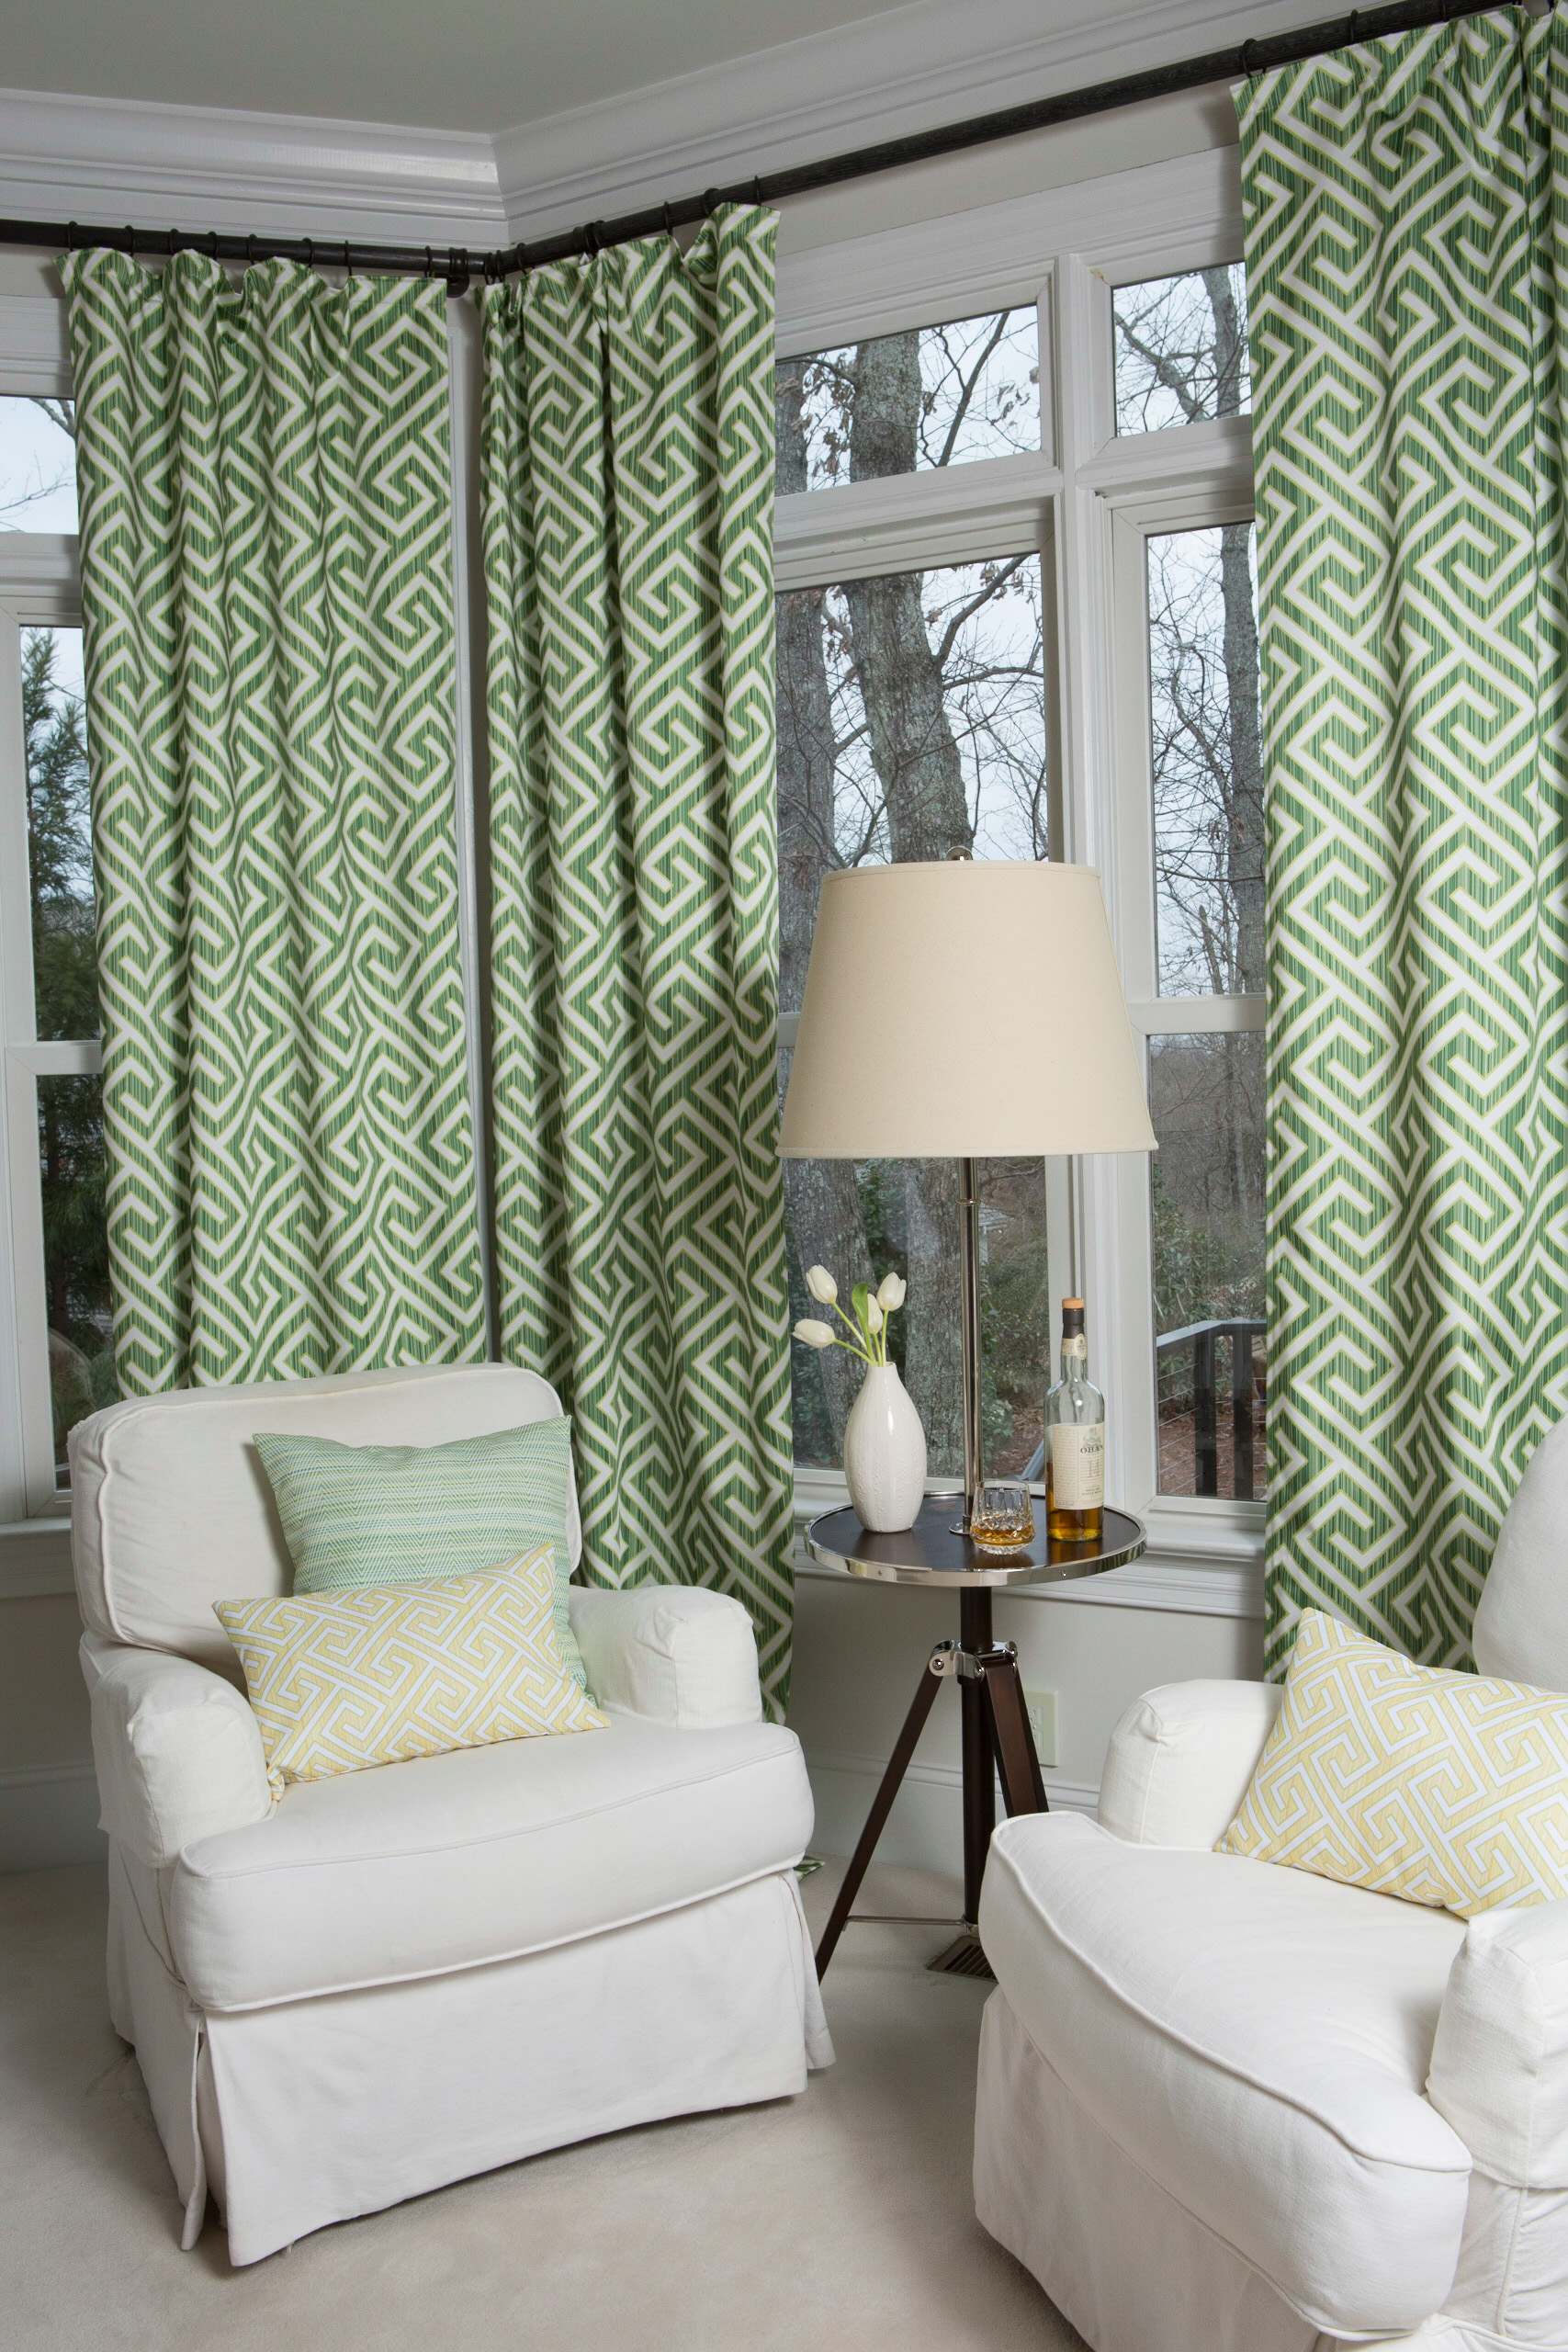 cornices louver upholstered valance bozeman window style com the blinds board by budget plantation cafe cornice t for shutters